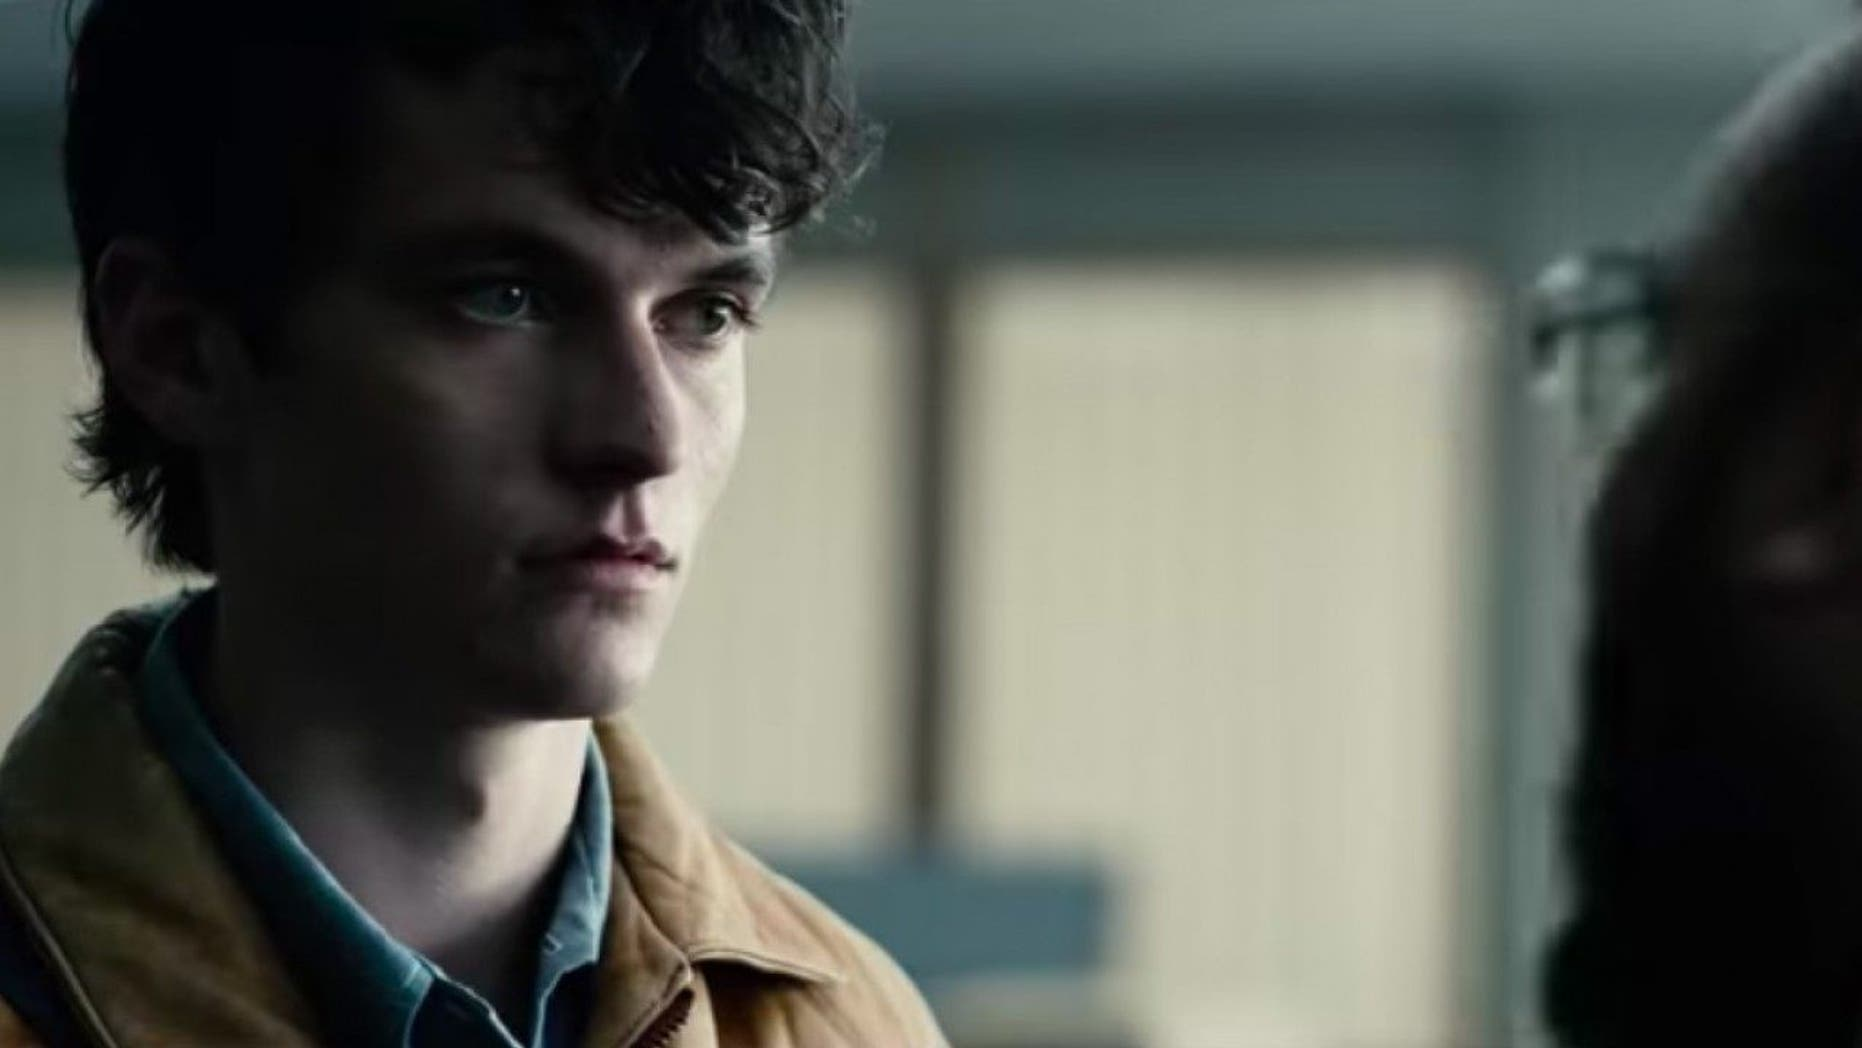 Black Mirror Bandersnatch Hits Netflix Tomorrow, Watch The Freaky Trailer